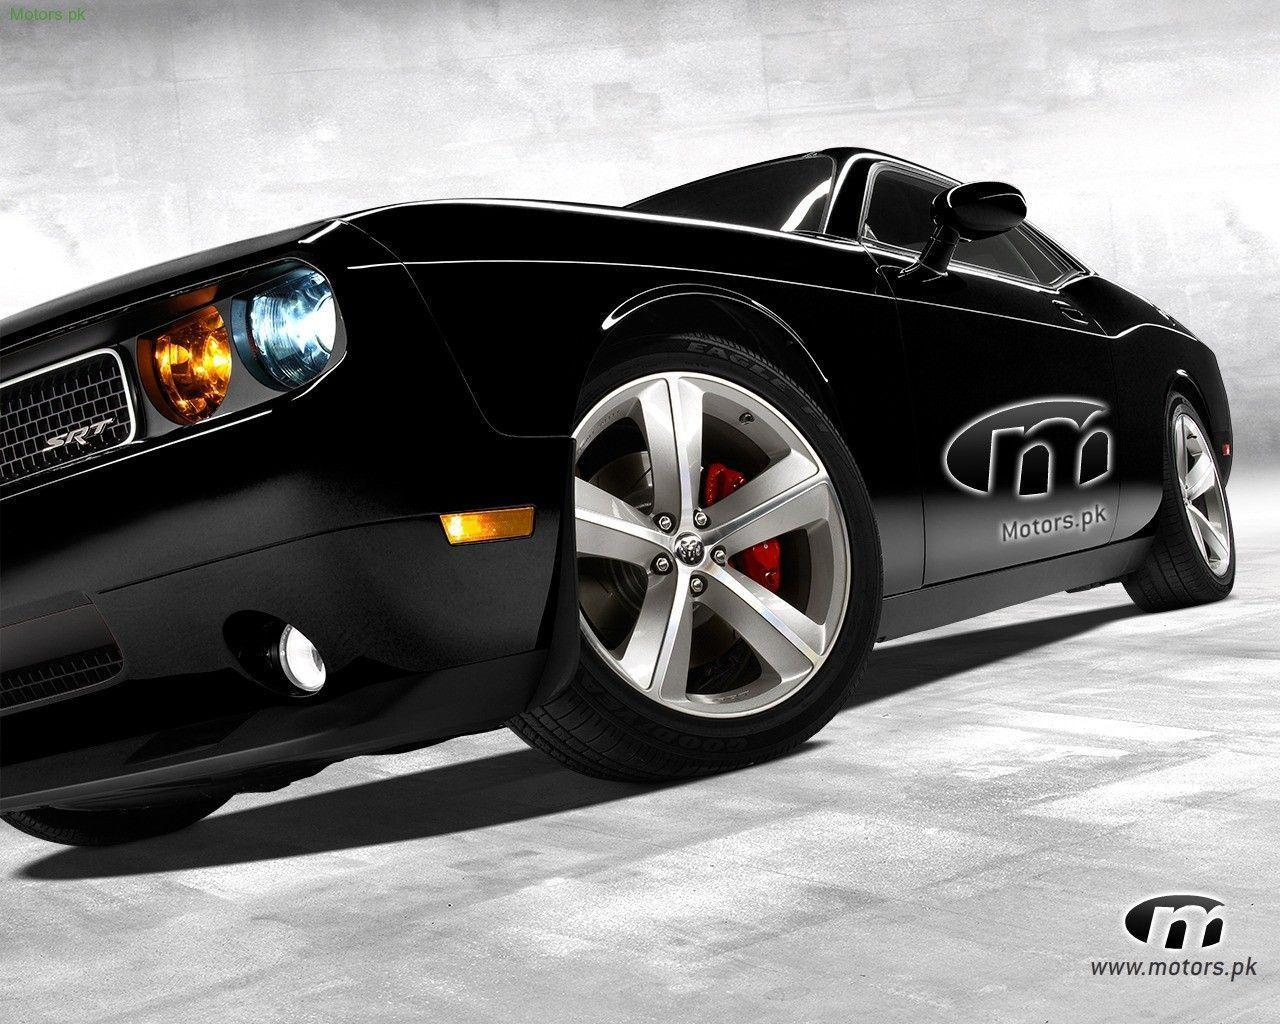 Wallpapers Of Muscle Cars | coolstyle wallpapers.